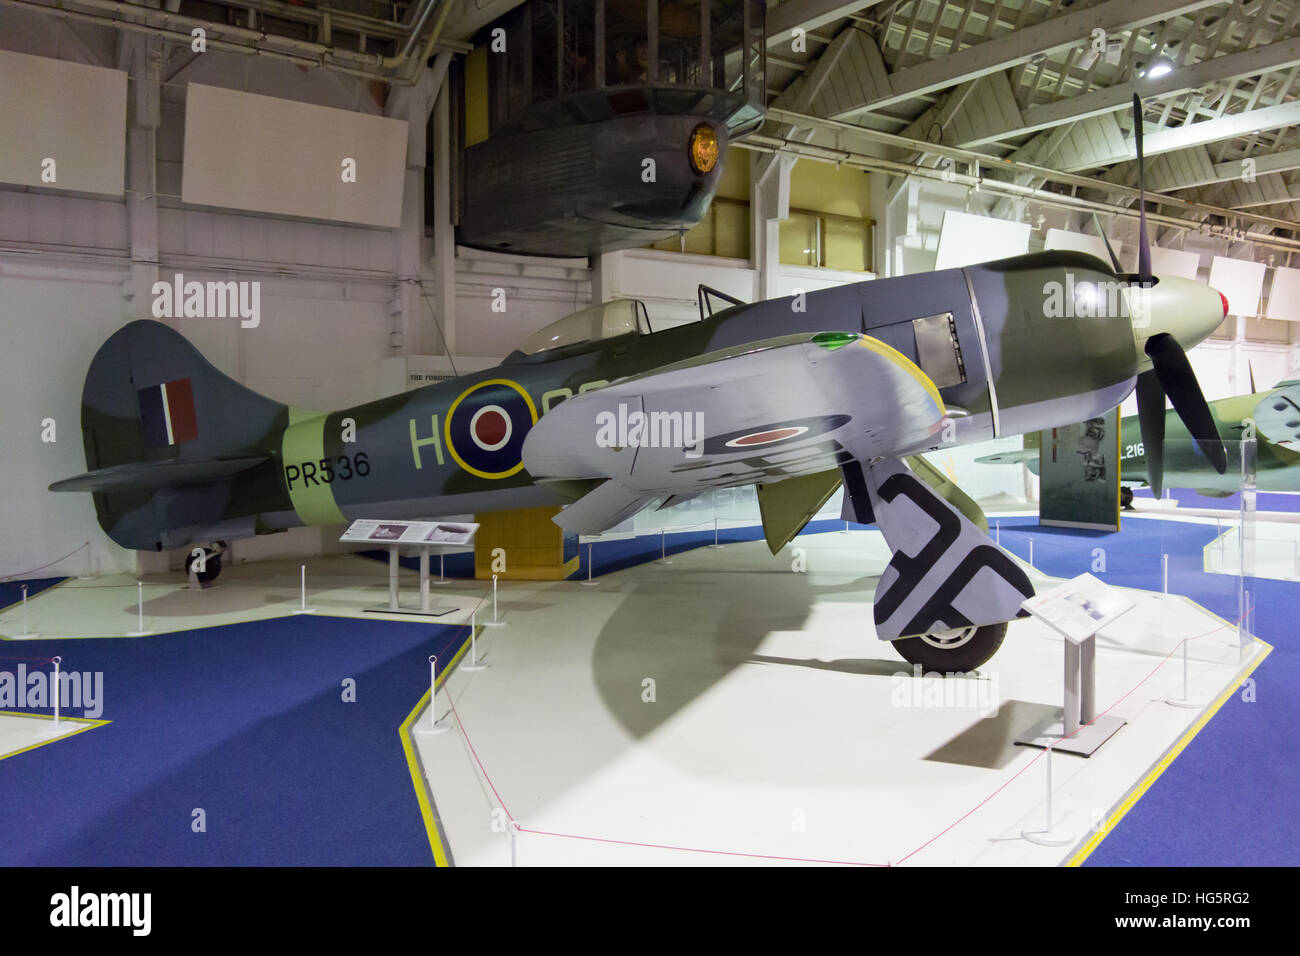 Hawker Siddeley Tempest - Stock Image